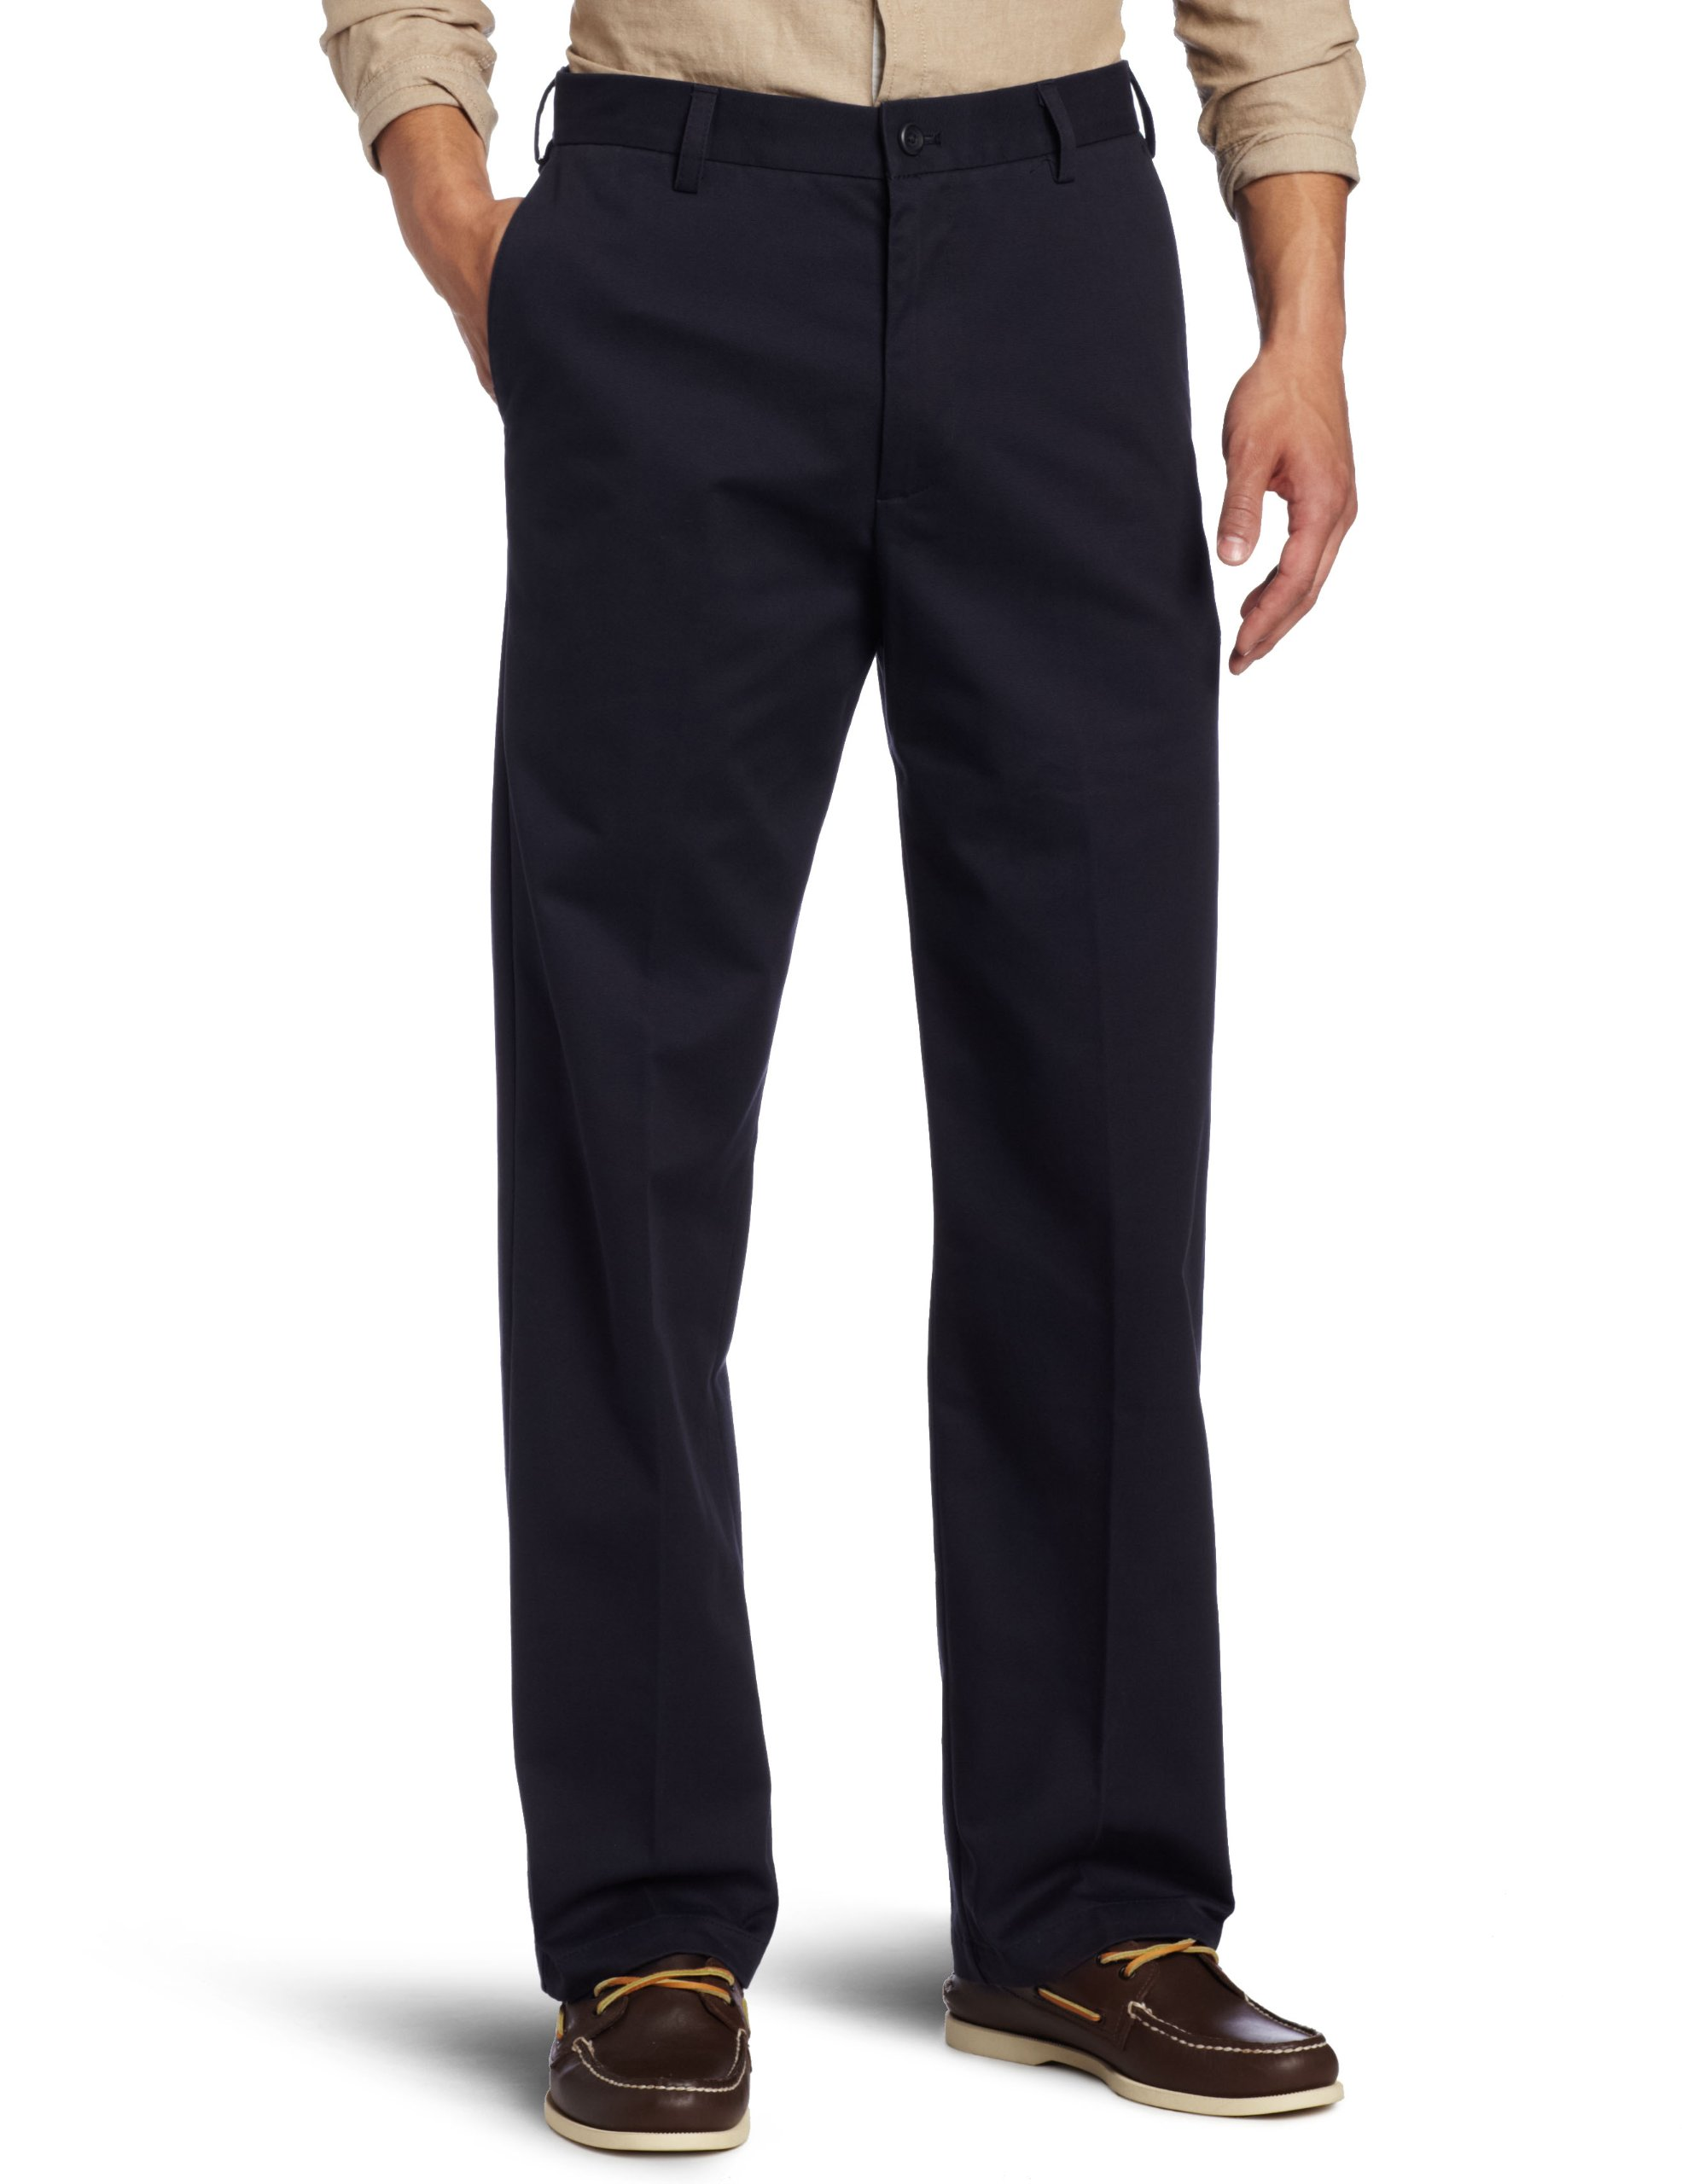 IZOD Men's American Chino Flat Front Straight-Fit Pant, Navy, 33W x 32L